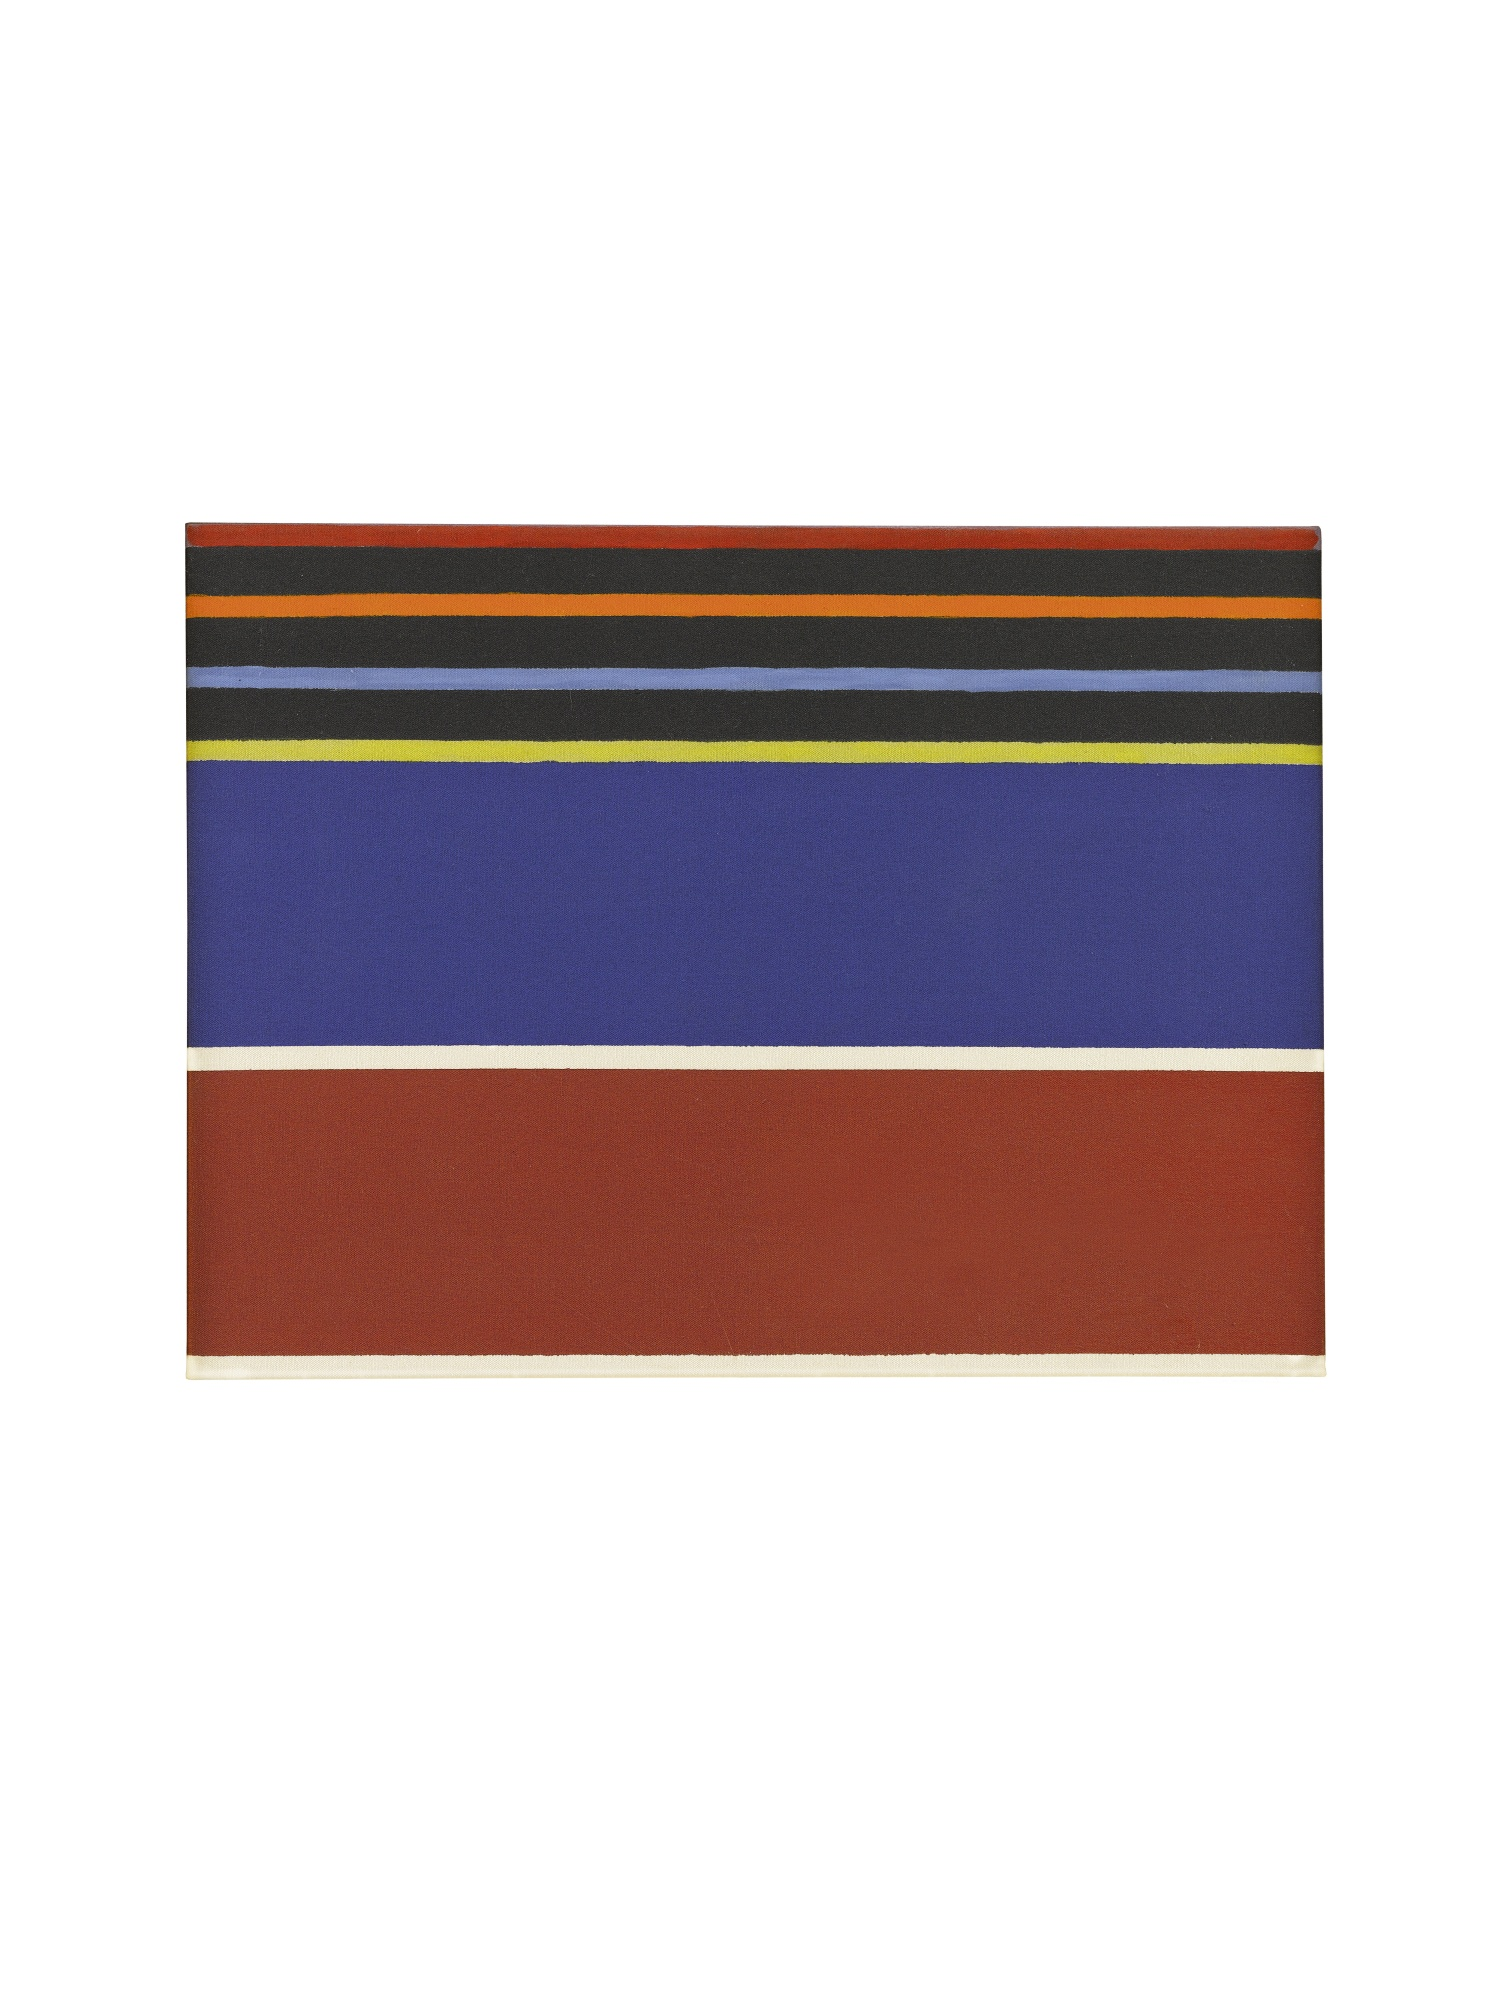 Kenneth Noland-Silent Adios I; Rainbow's Blanket [Two Works]-1980